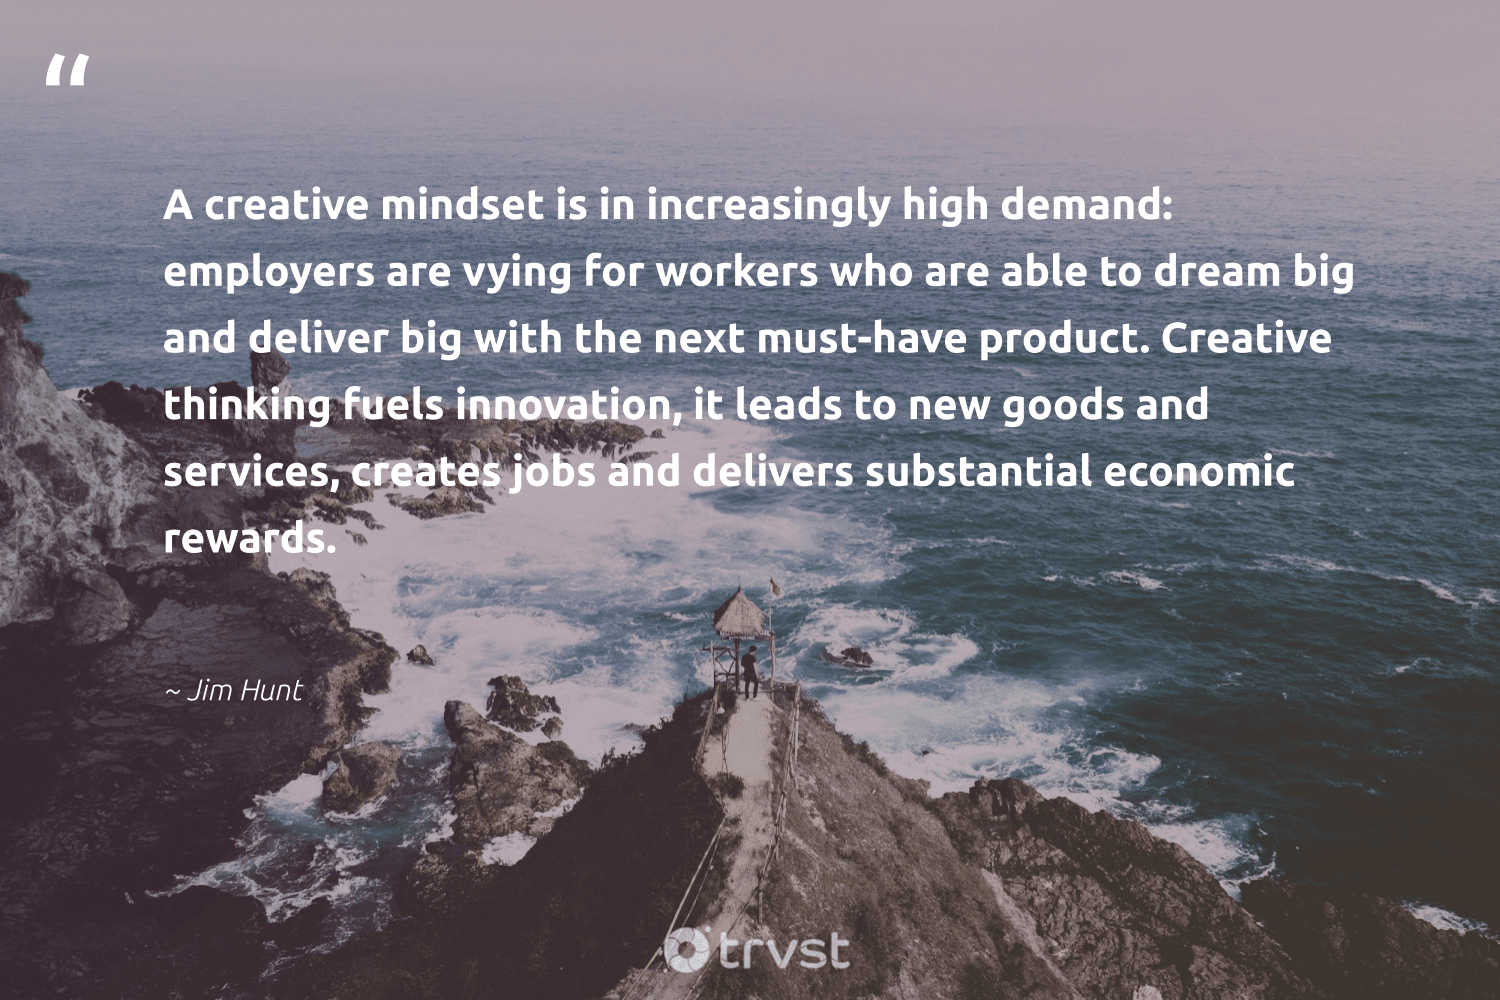 """""""A creative mindset is in increasingly high demand: employers are vying for workers who are able to dream big and deliver big with the next must-have product. Creative thinking fuels innovation, it leads to new goods and services, creates jobs and delivers substantial economic rewards.""""  - Jim Hunt #trvst #quotes #mindset #creativemindset #creative #growthmindset #goals #begreat #nevergiveup #dotherightthing #mindfulness #positivity"""